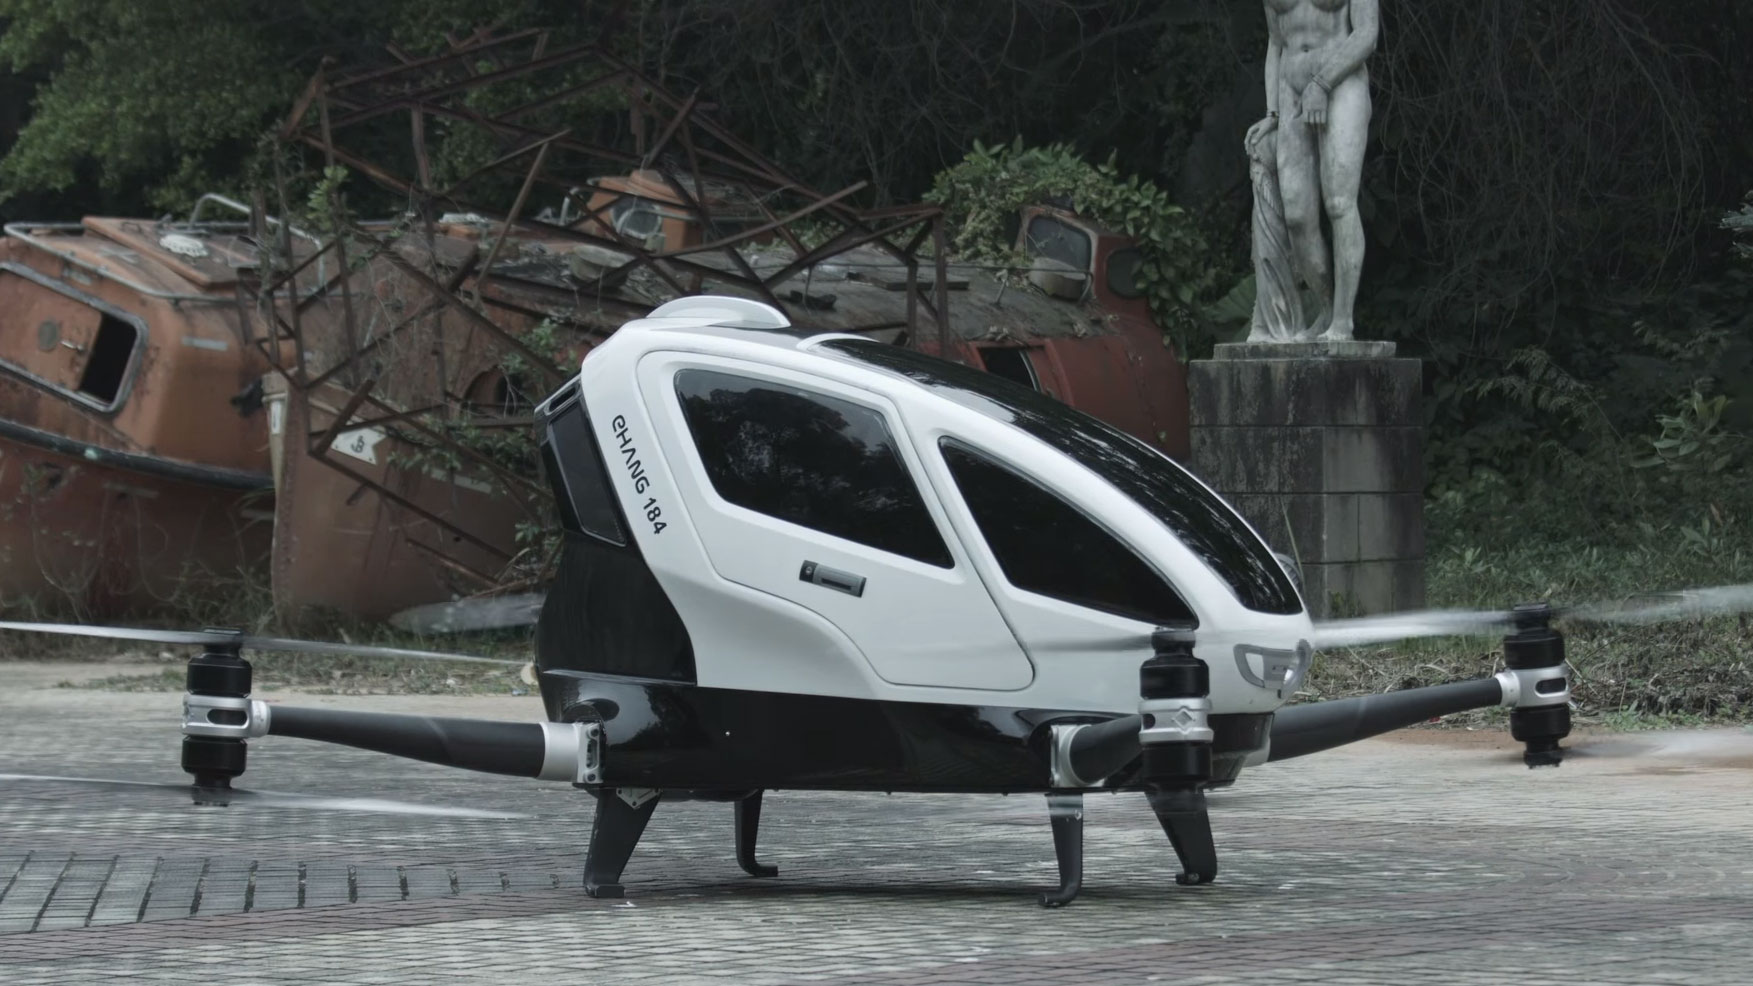 Worlds First Human Carrying Drone Is The Closest Weve Come To A Flying Car